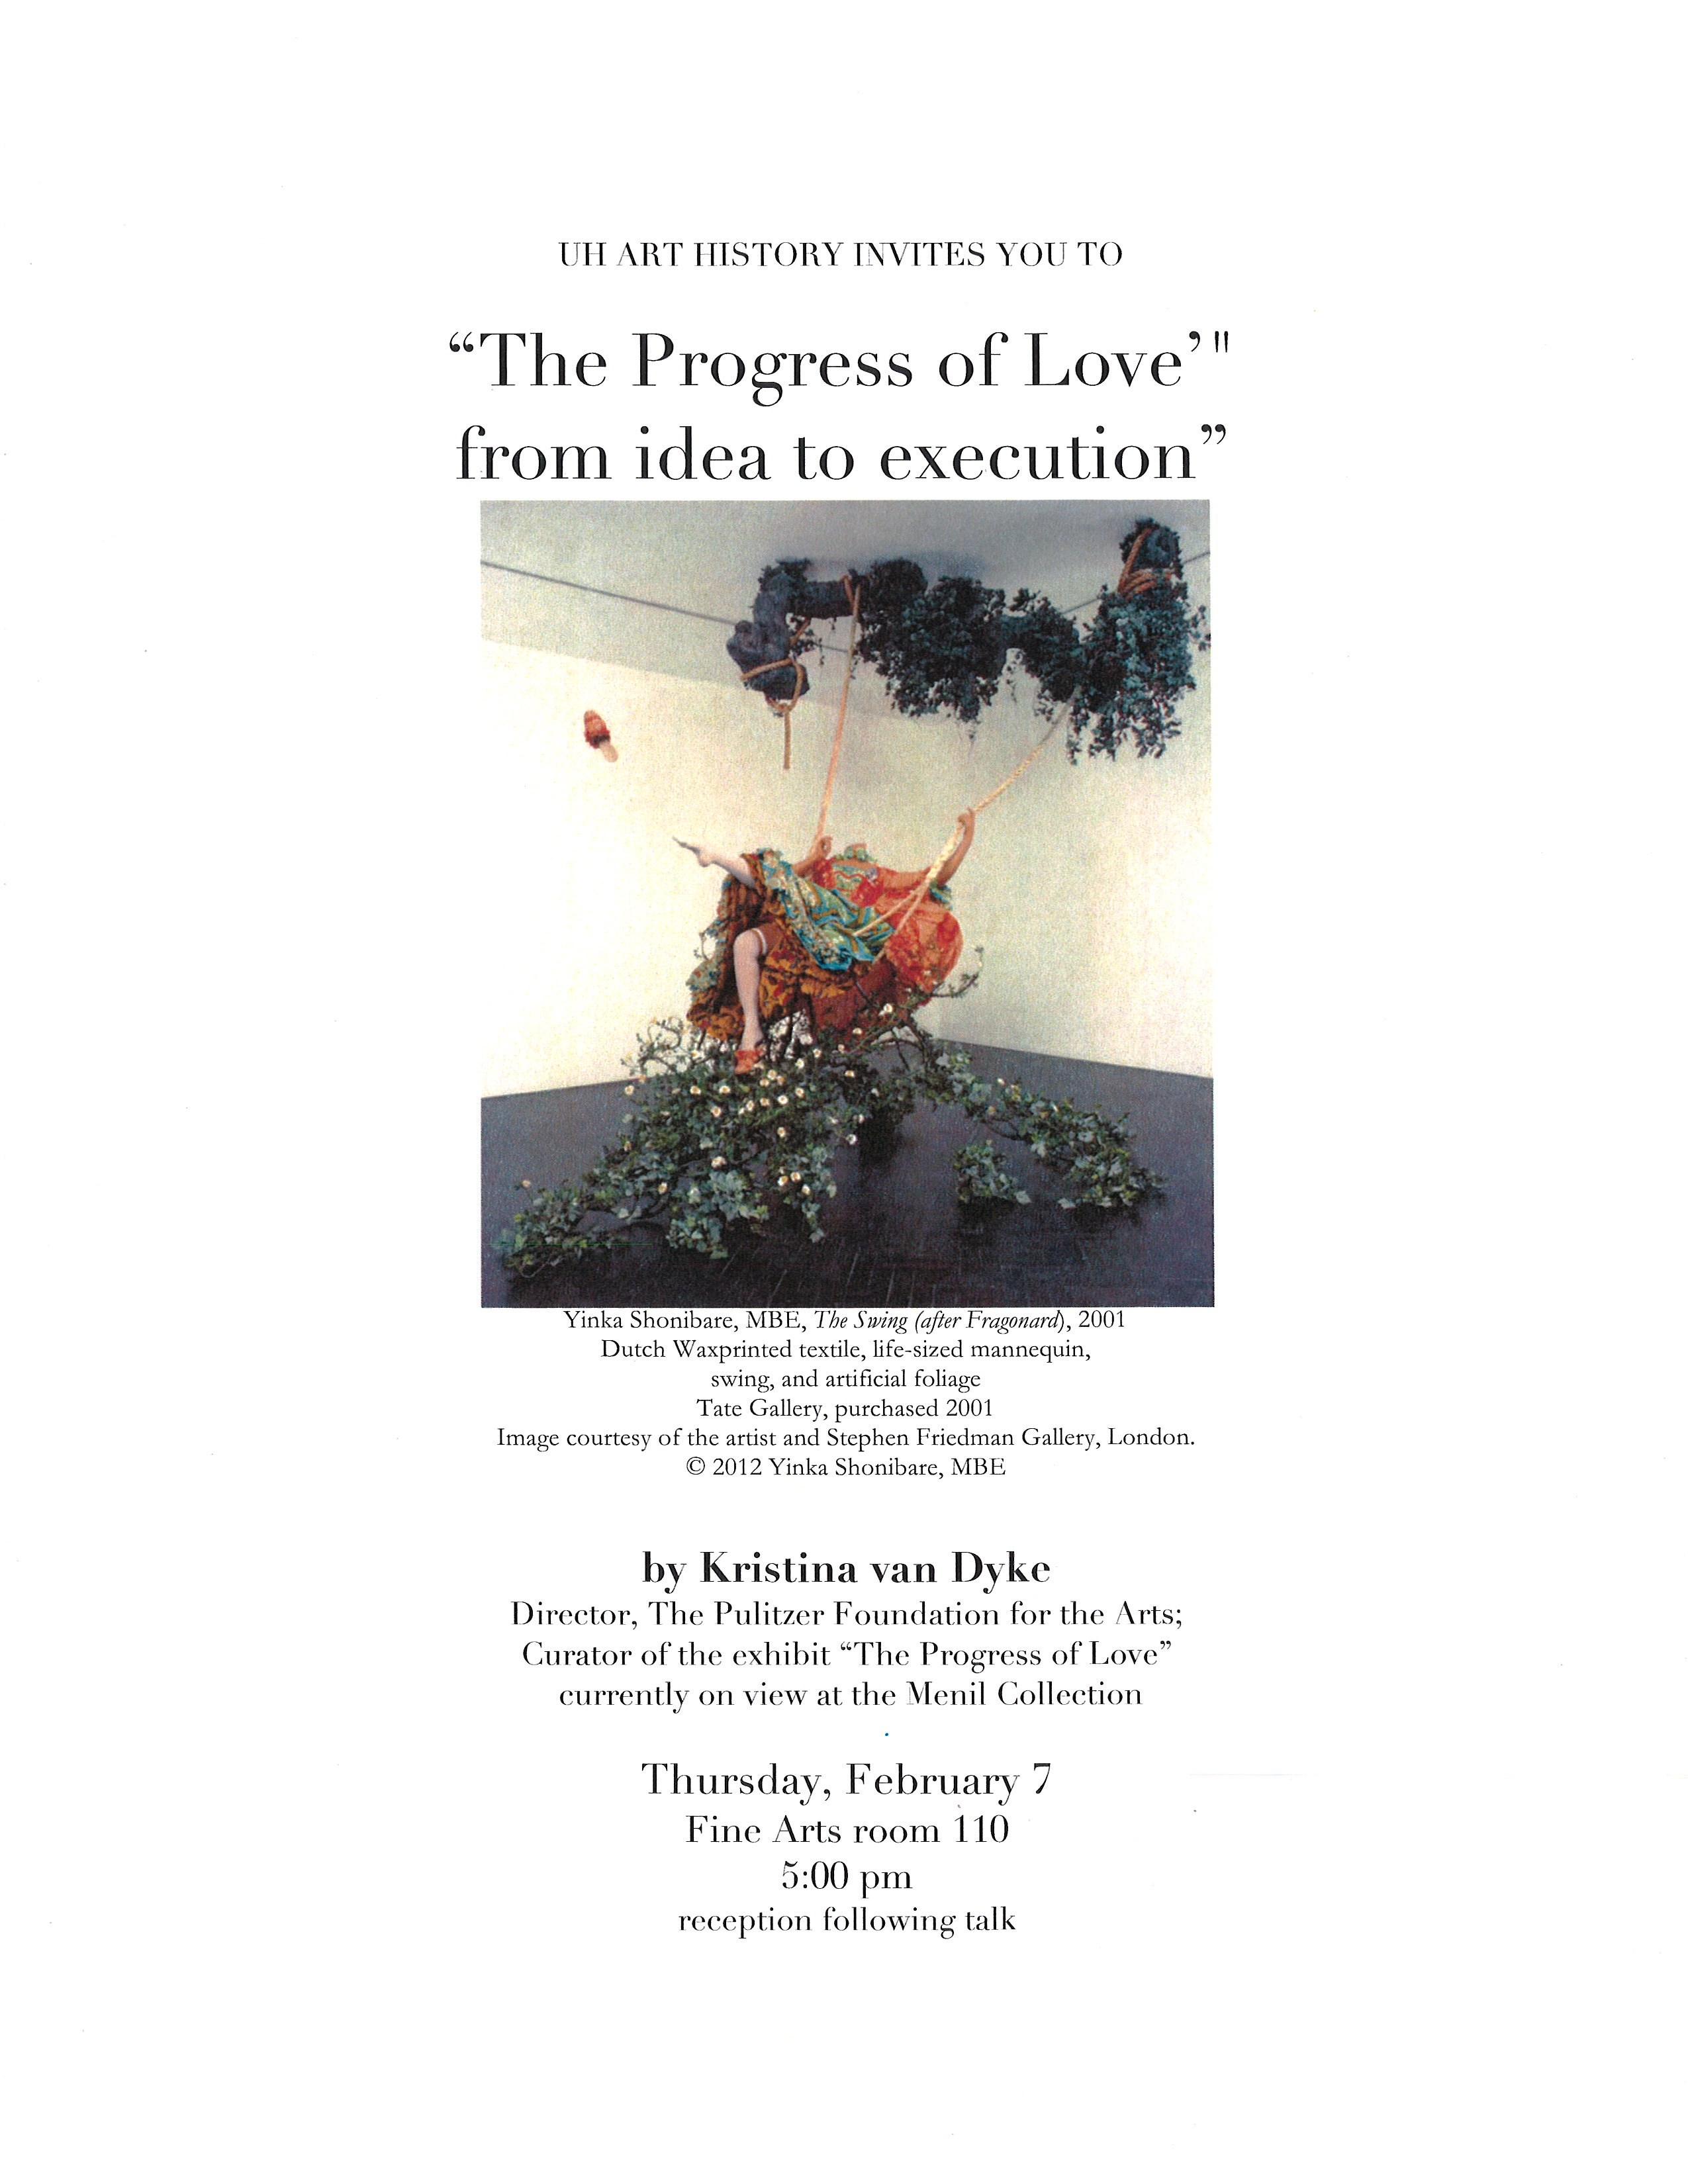 The Progress of Love